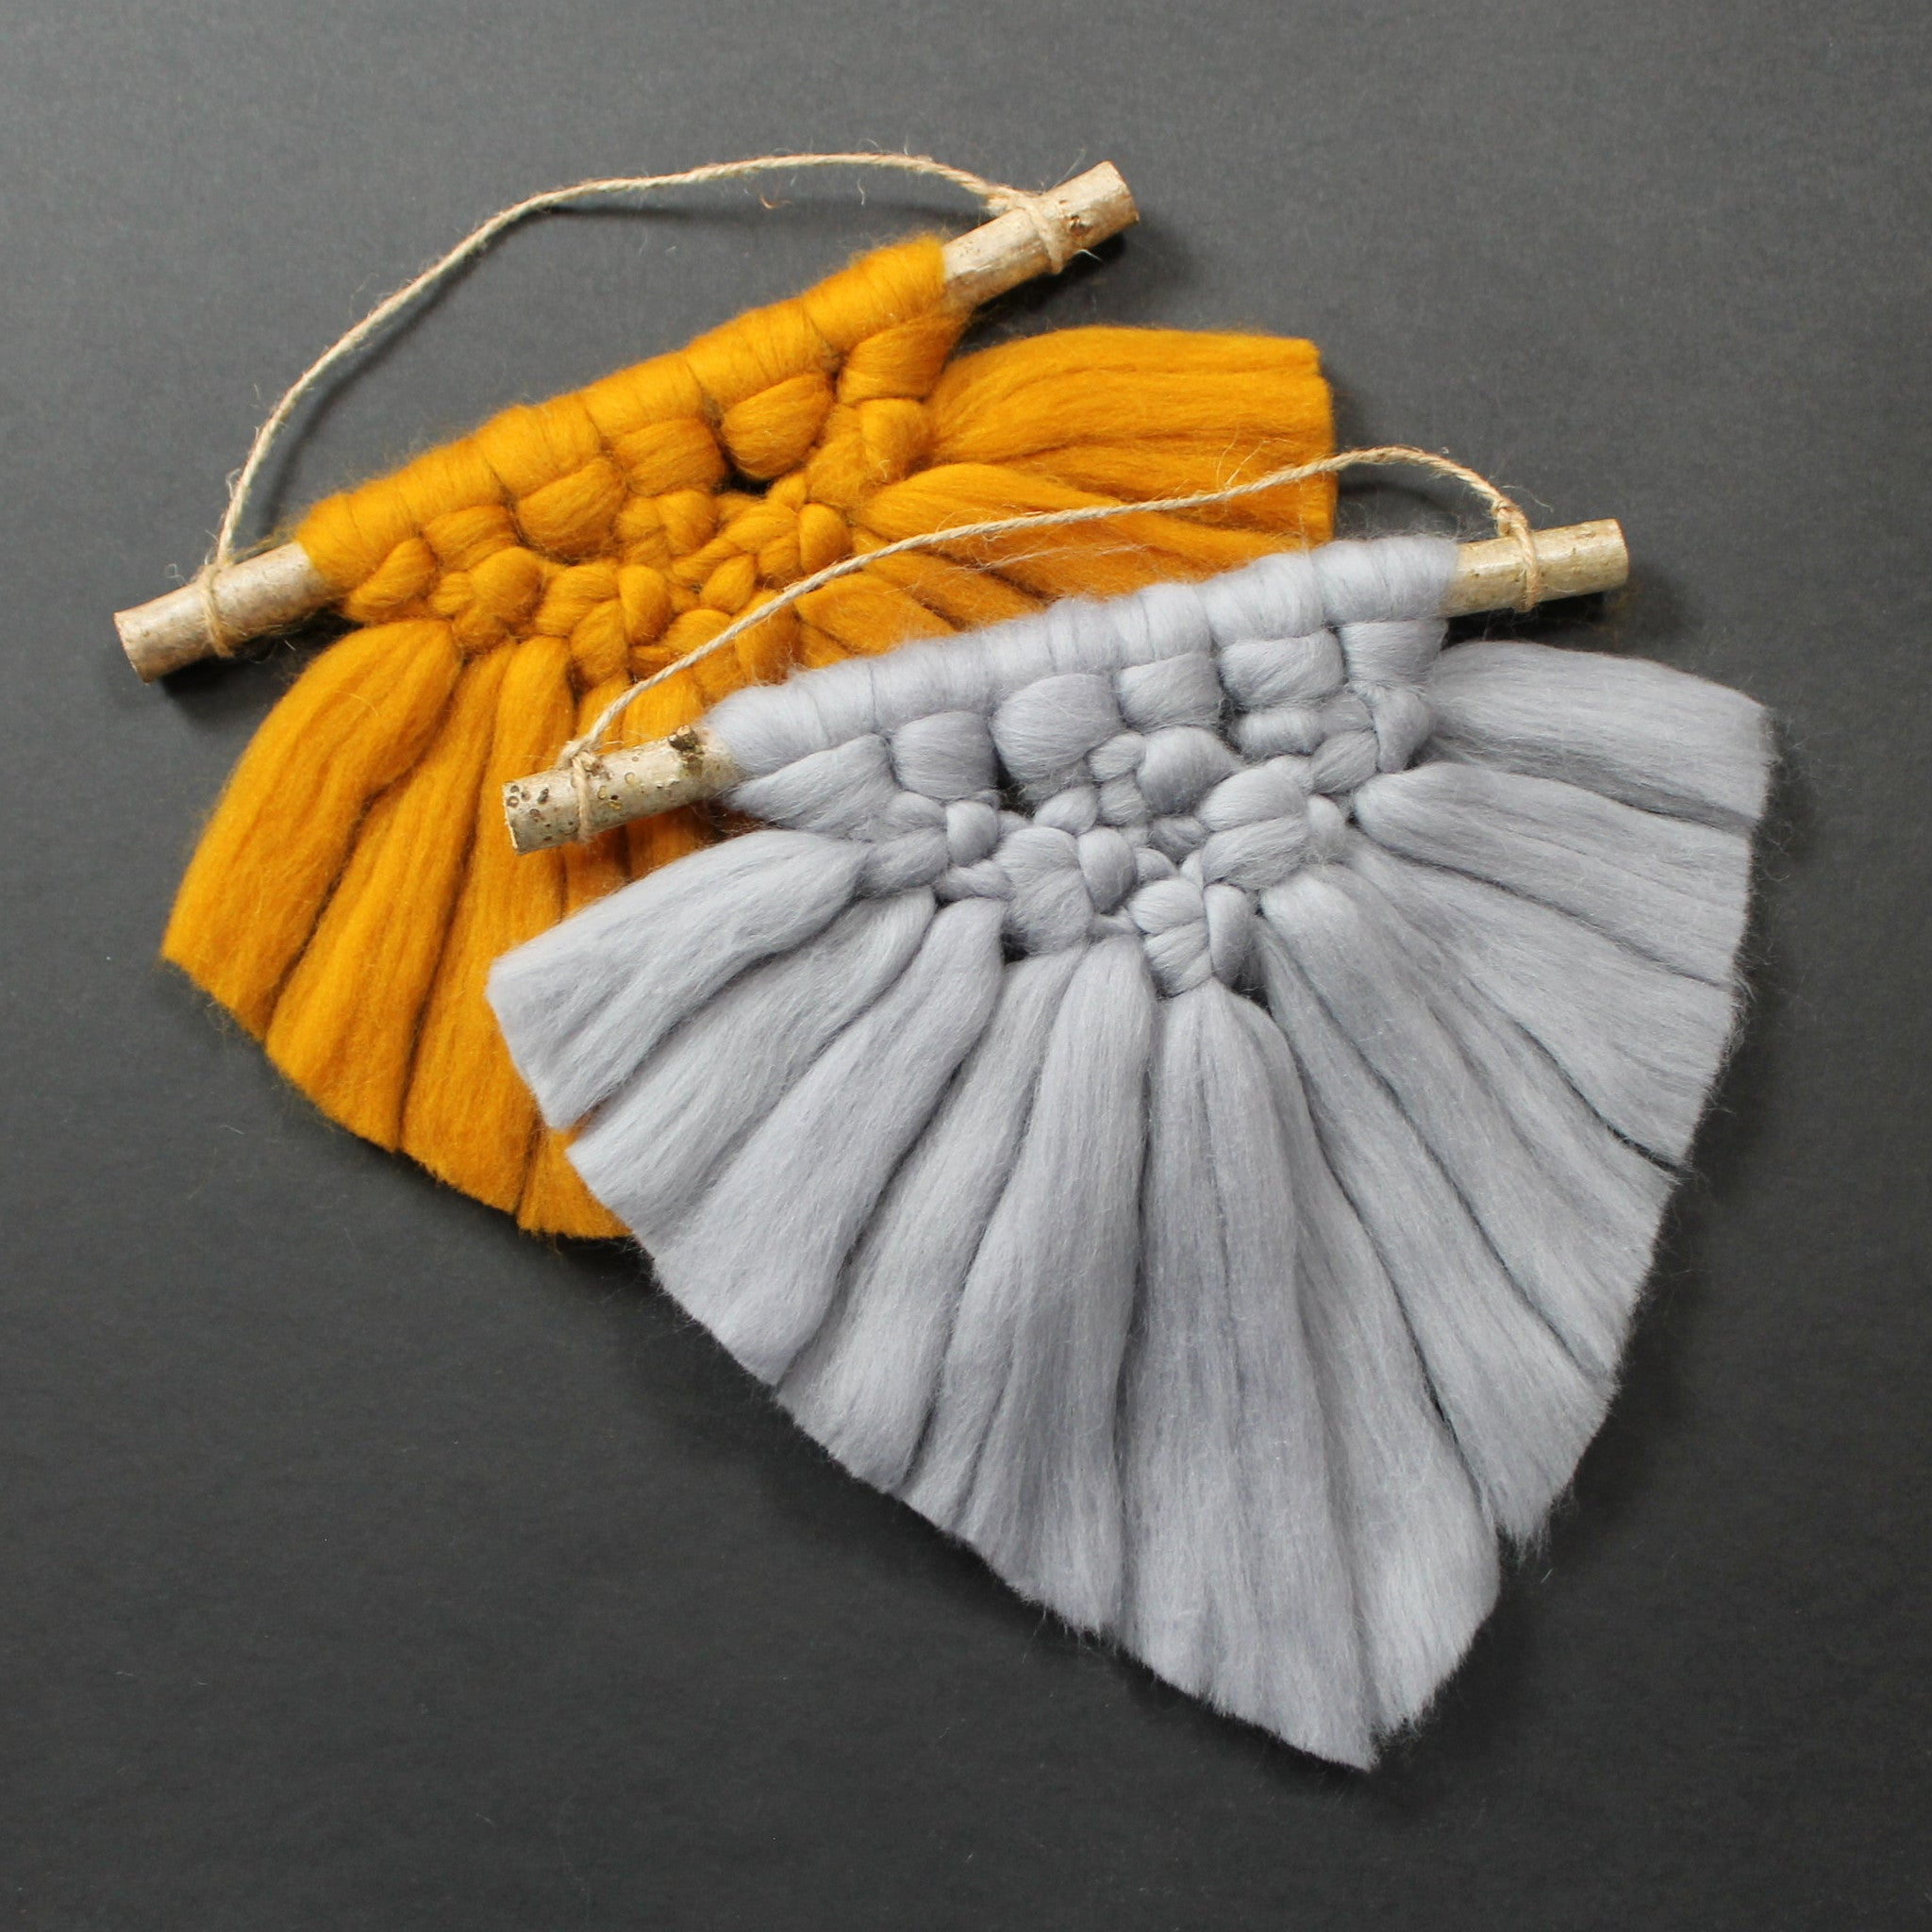 Merino wool wall hanging - Mara studio